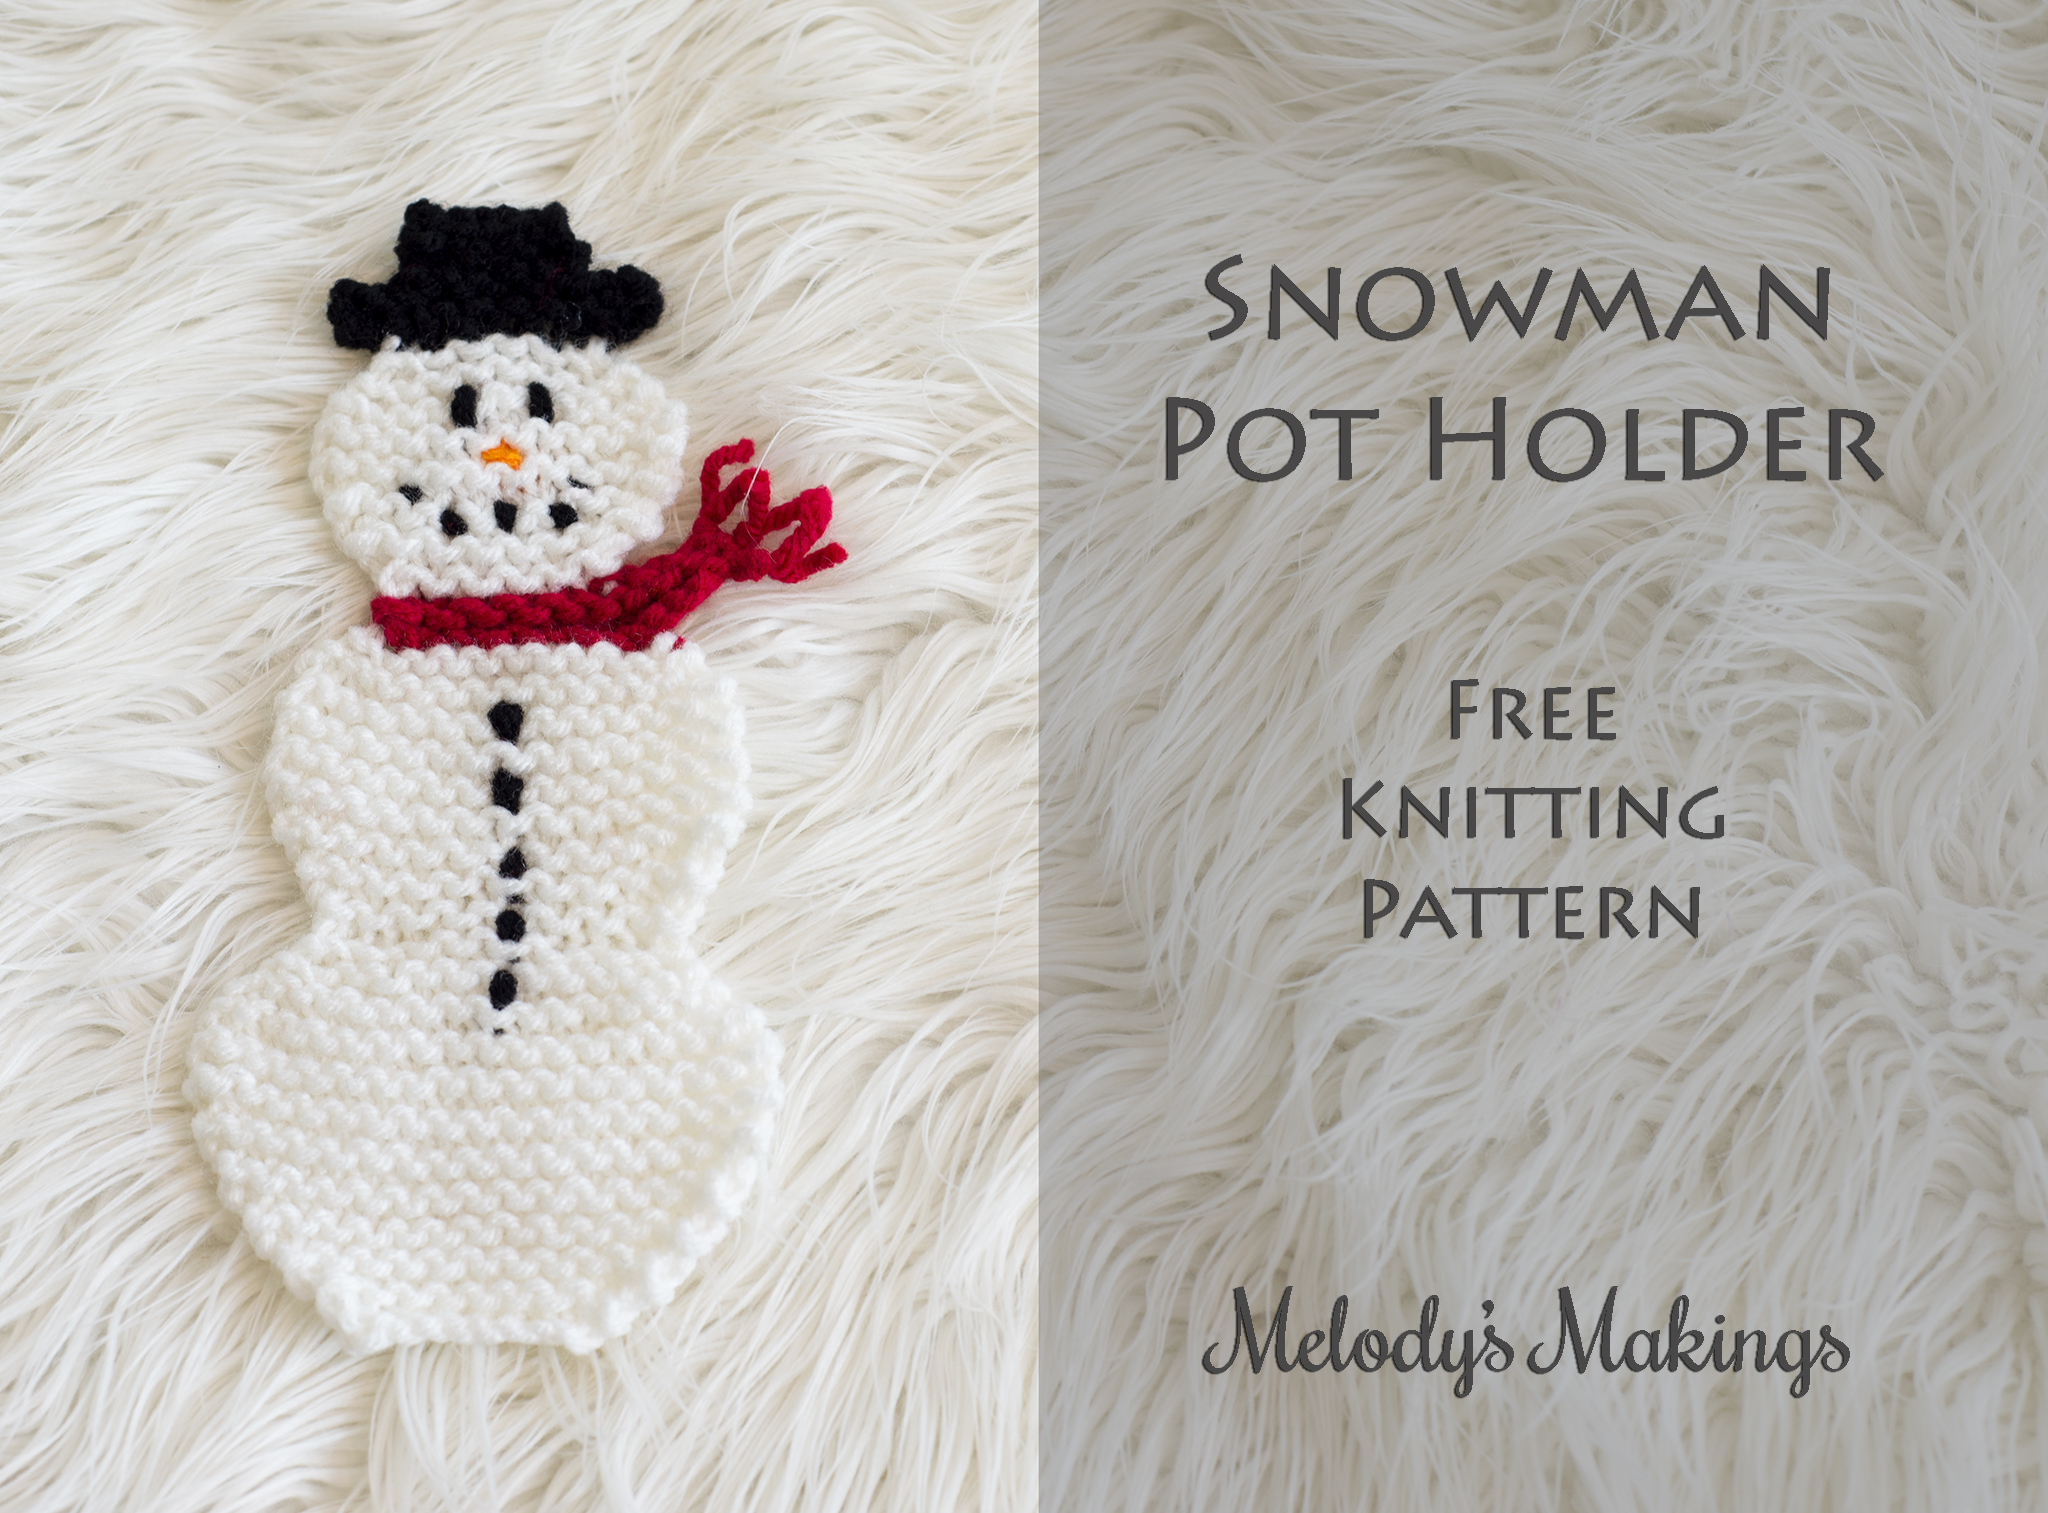 Snowman Pot Holder Free Pattern! (Knit & Crochet) Melodys Makings